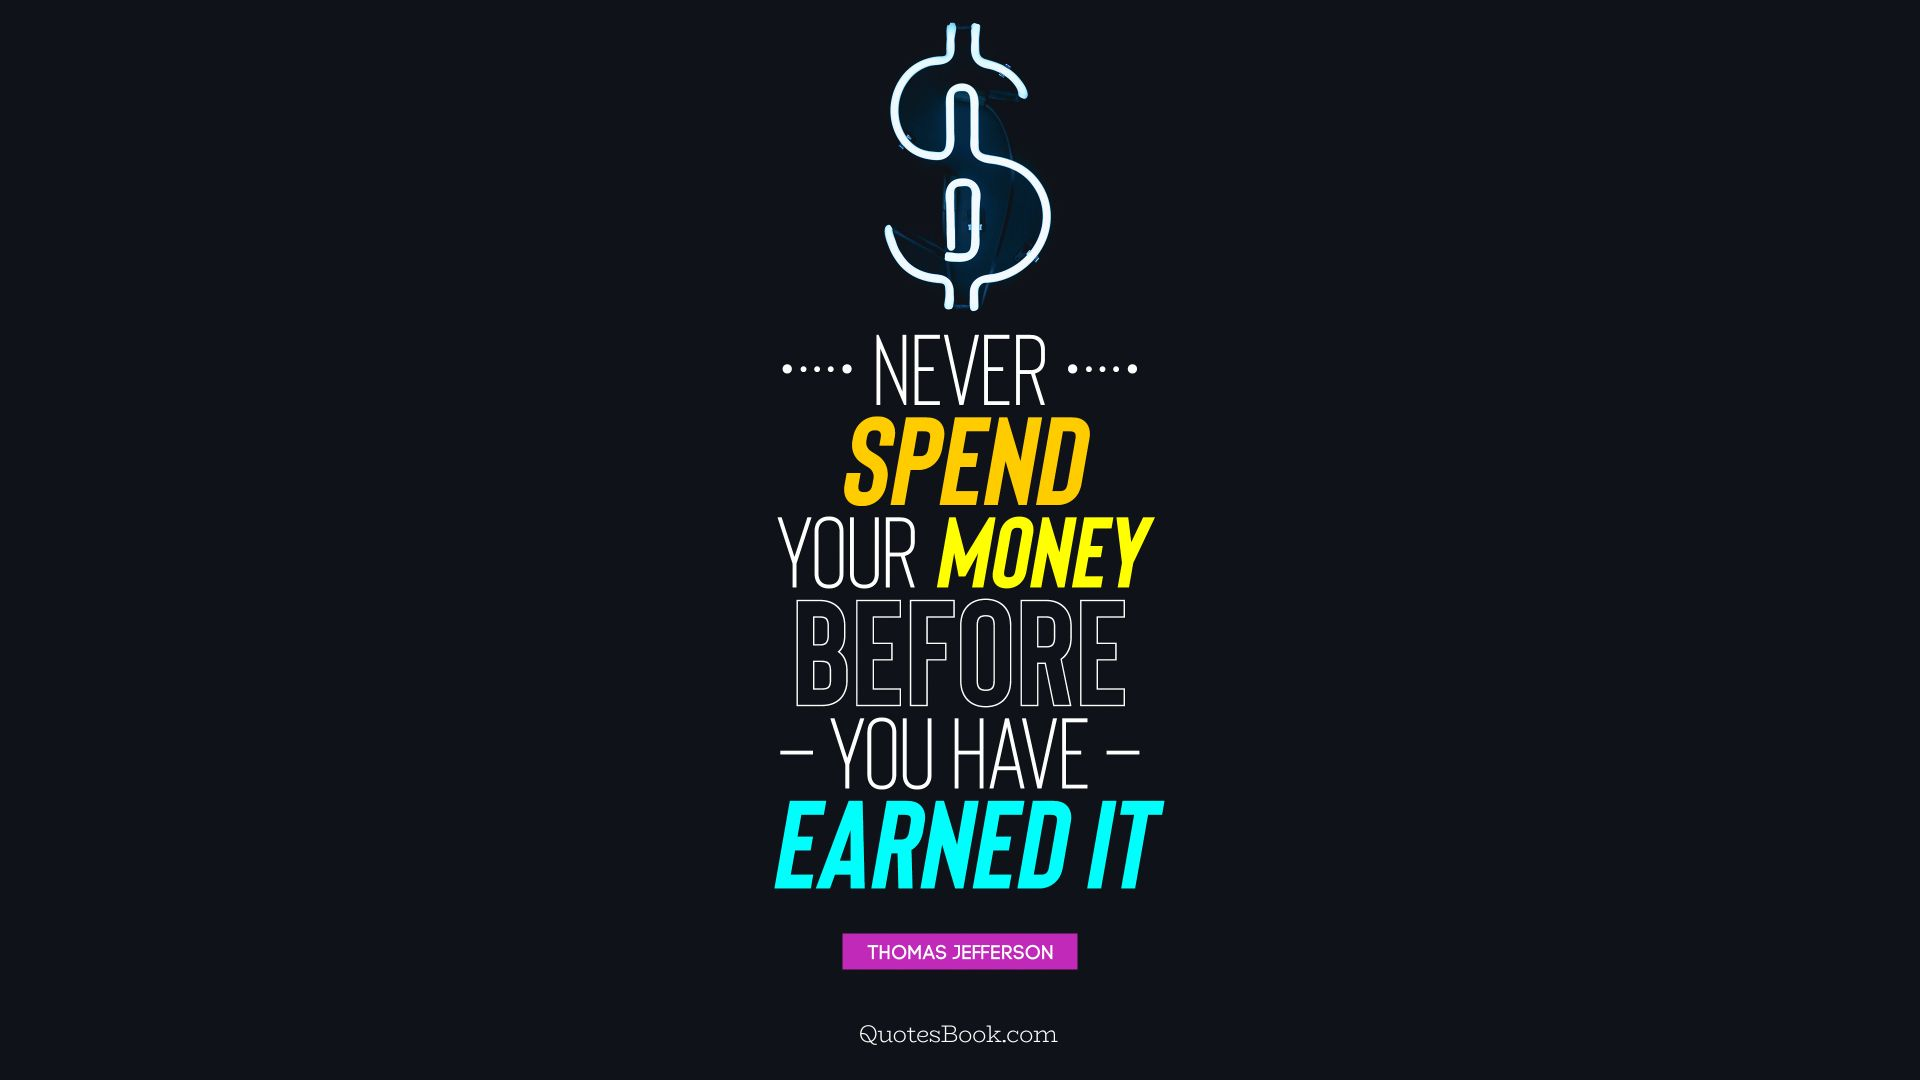 Never spend your money before you have earned it. - Quote by Thomas Jefferson